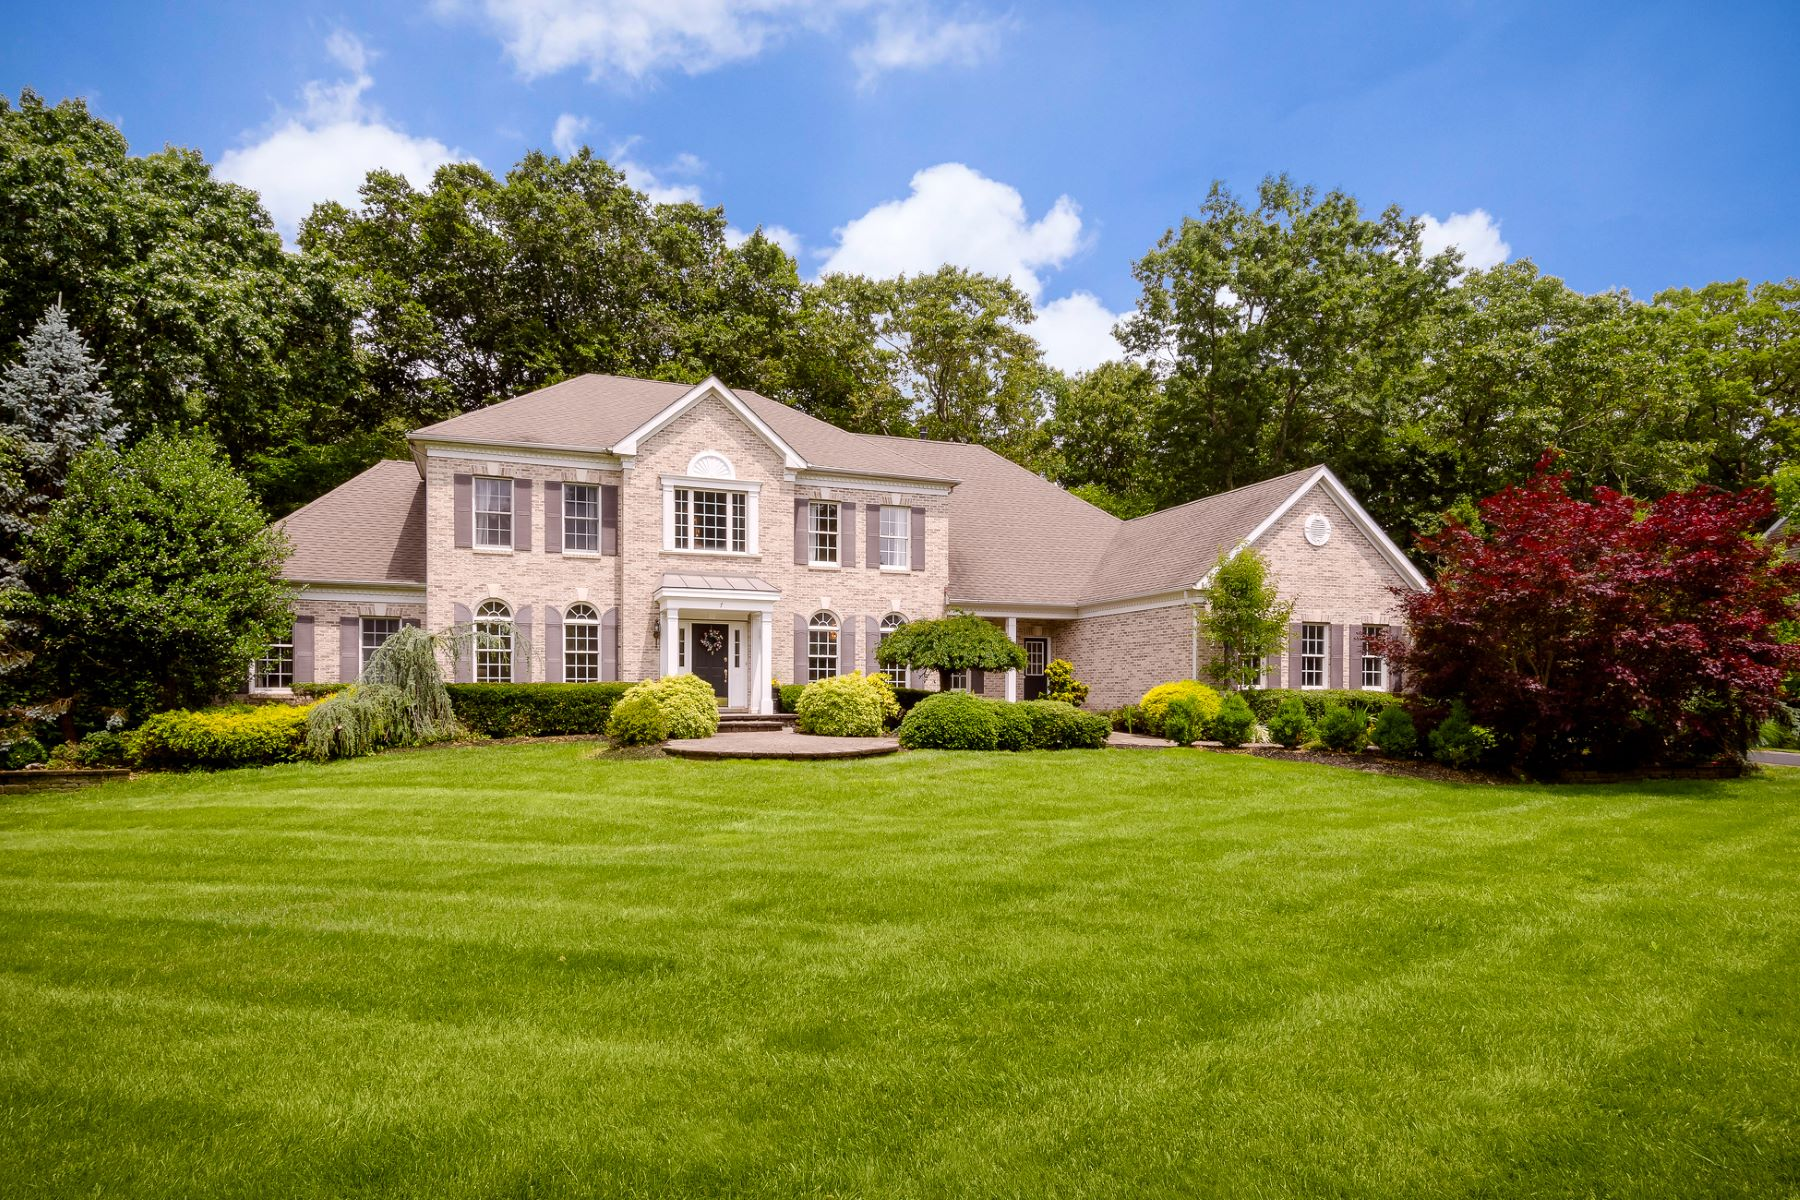 Single Family Homes für Verkauf beim Stately Brick Front Colonial 7 Shady Brook Lane, Cranbury, New Jersey 08512 Vereinigte Staaten